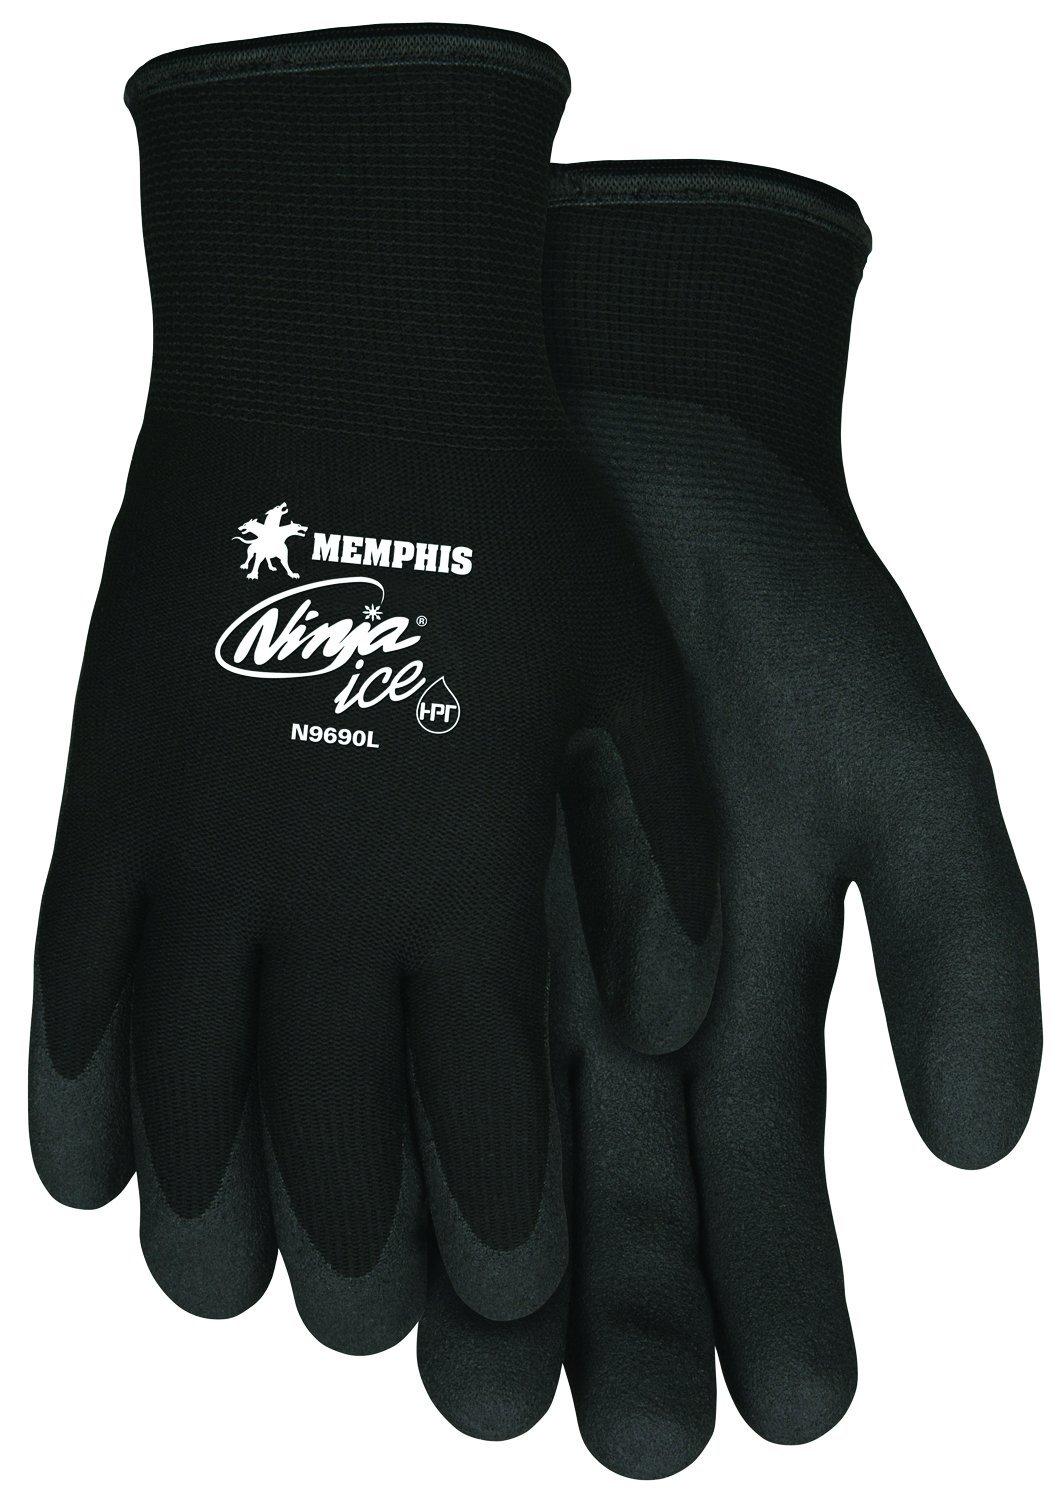 Memphis Glove N9690S Ninja Ice 15 Gauge Black Nylon Cold Weather Glove, Acrylic Terry Inner, HPT Palm and Fingertips, Small, 1 Pair